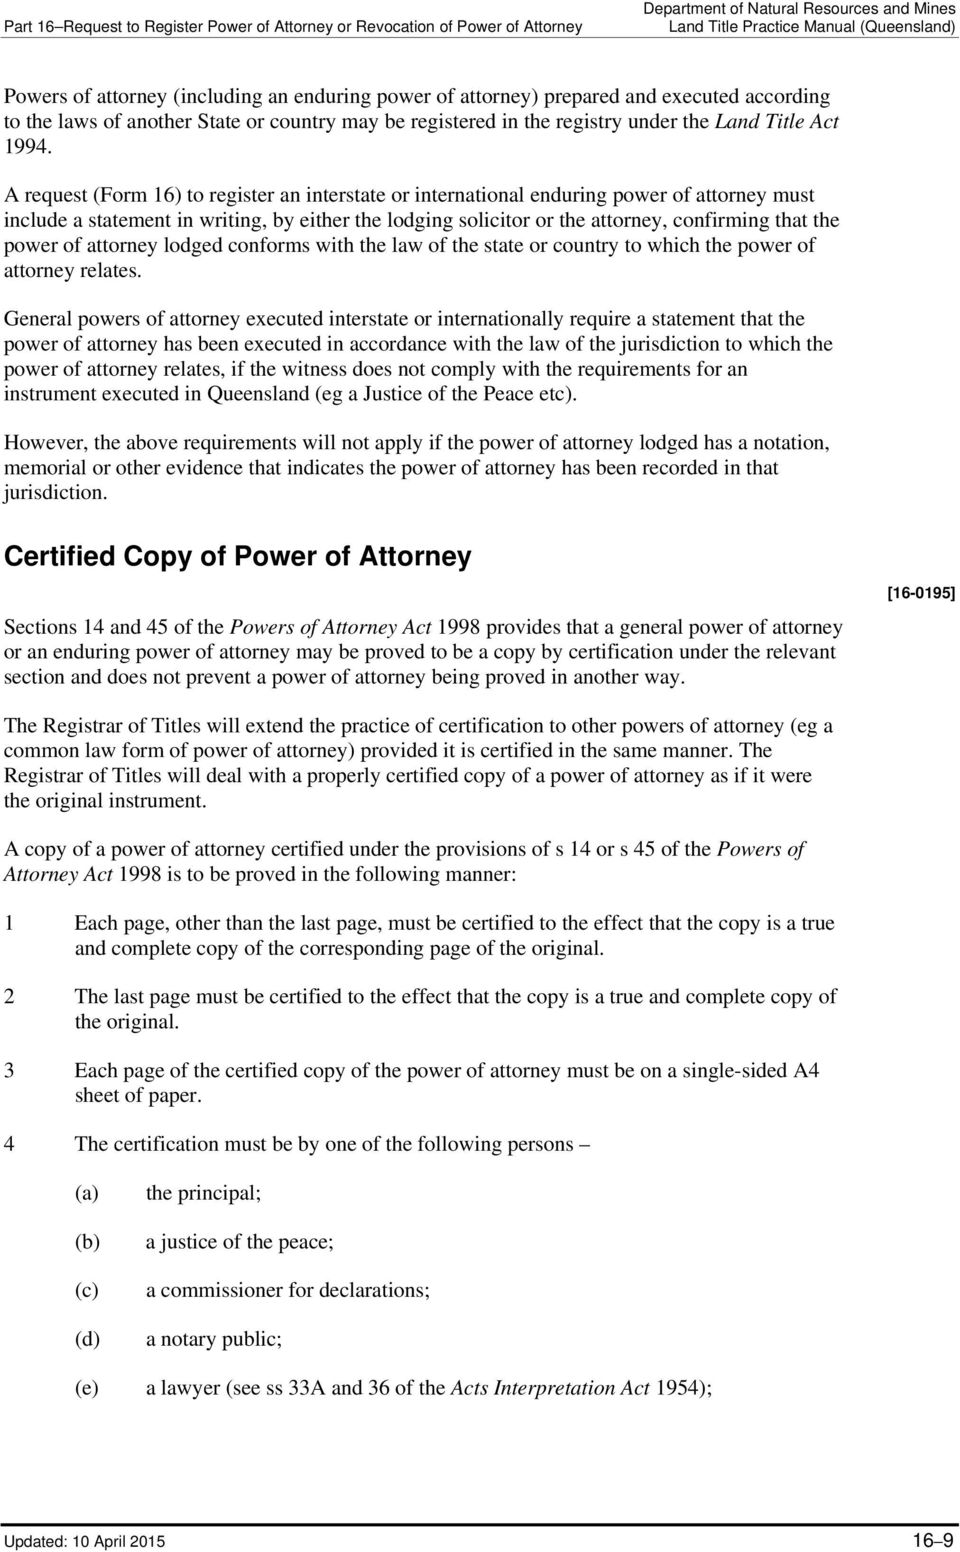 power of attorney lodged conforms with the law of the state or country to which the power of attorney relates.